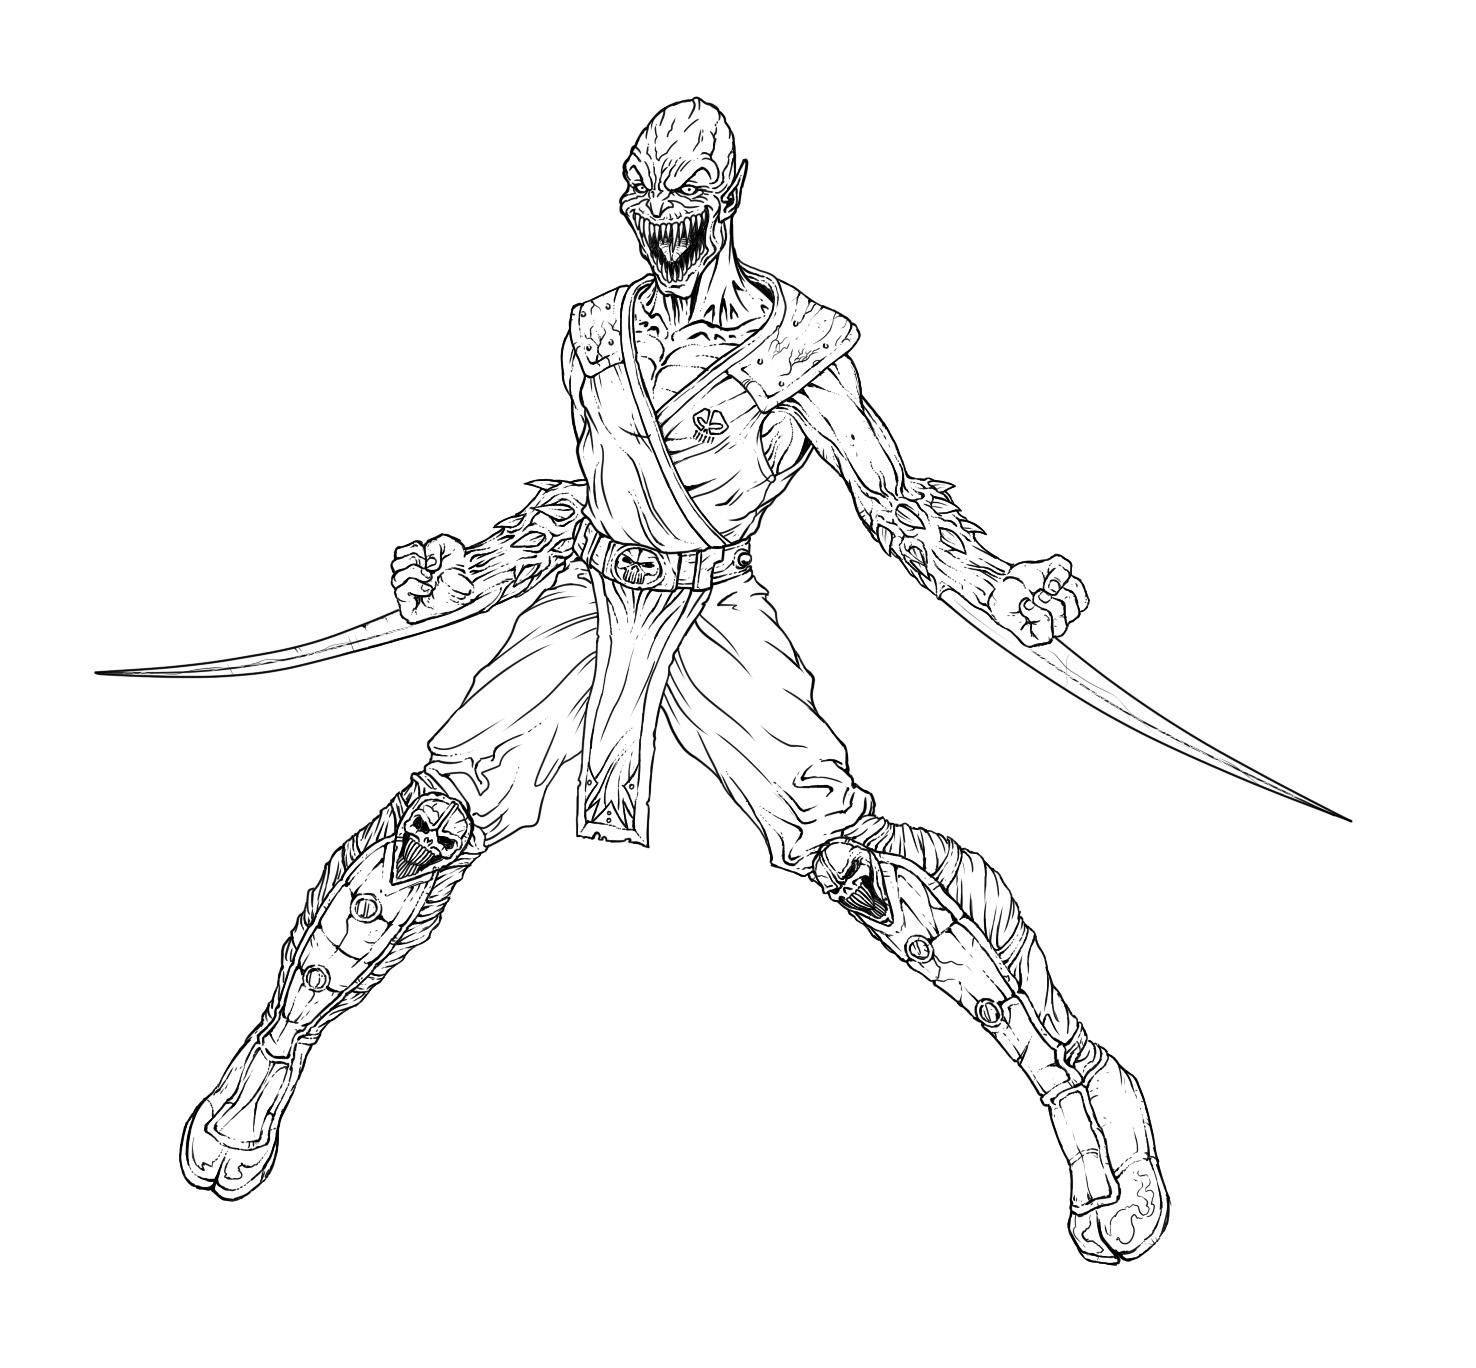 mortal kombat coloring pages - Free Large Images | isaiah bday ...